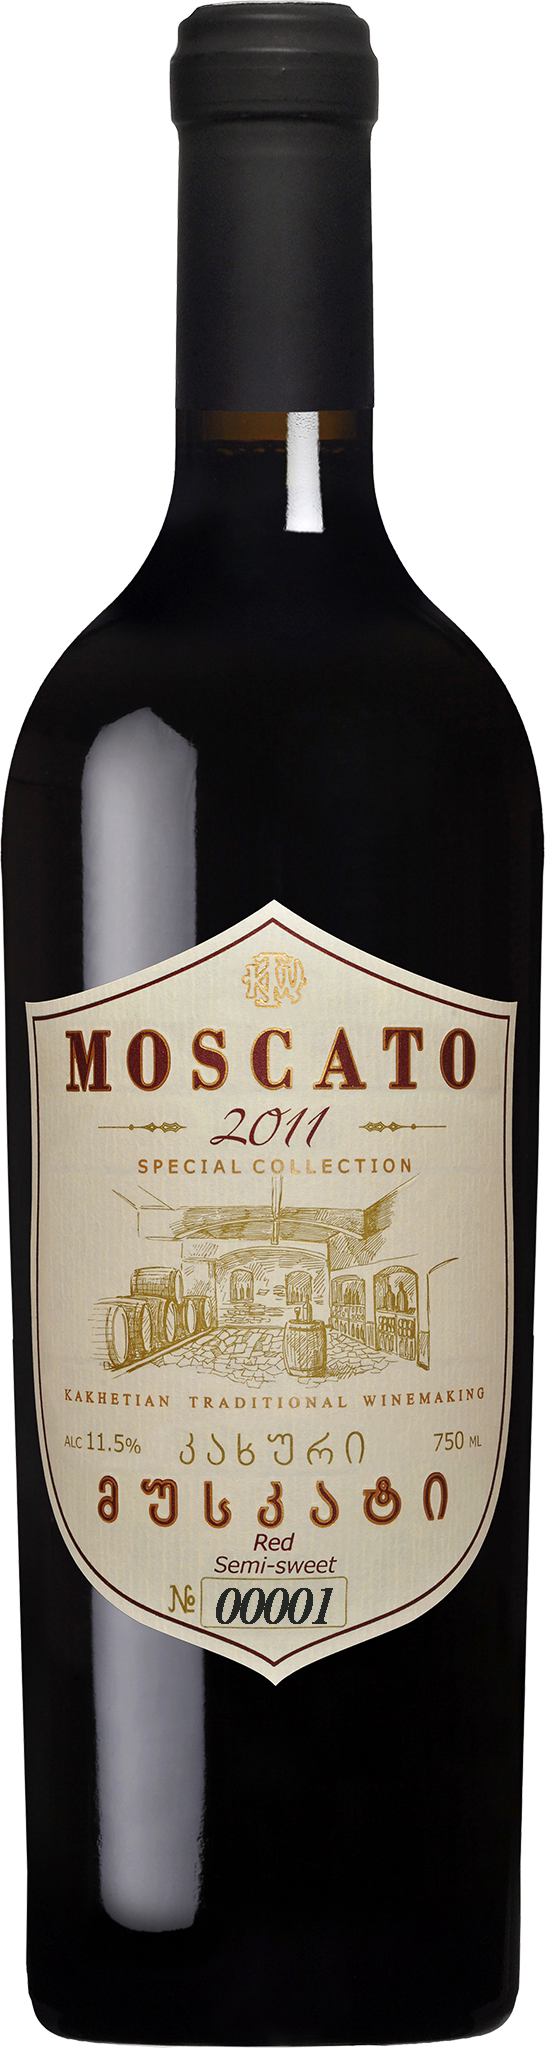 MOSCATO – SPECIAL COLLECTION